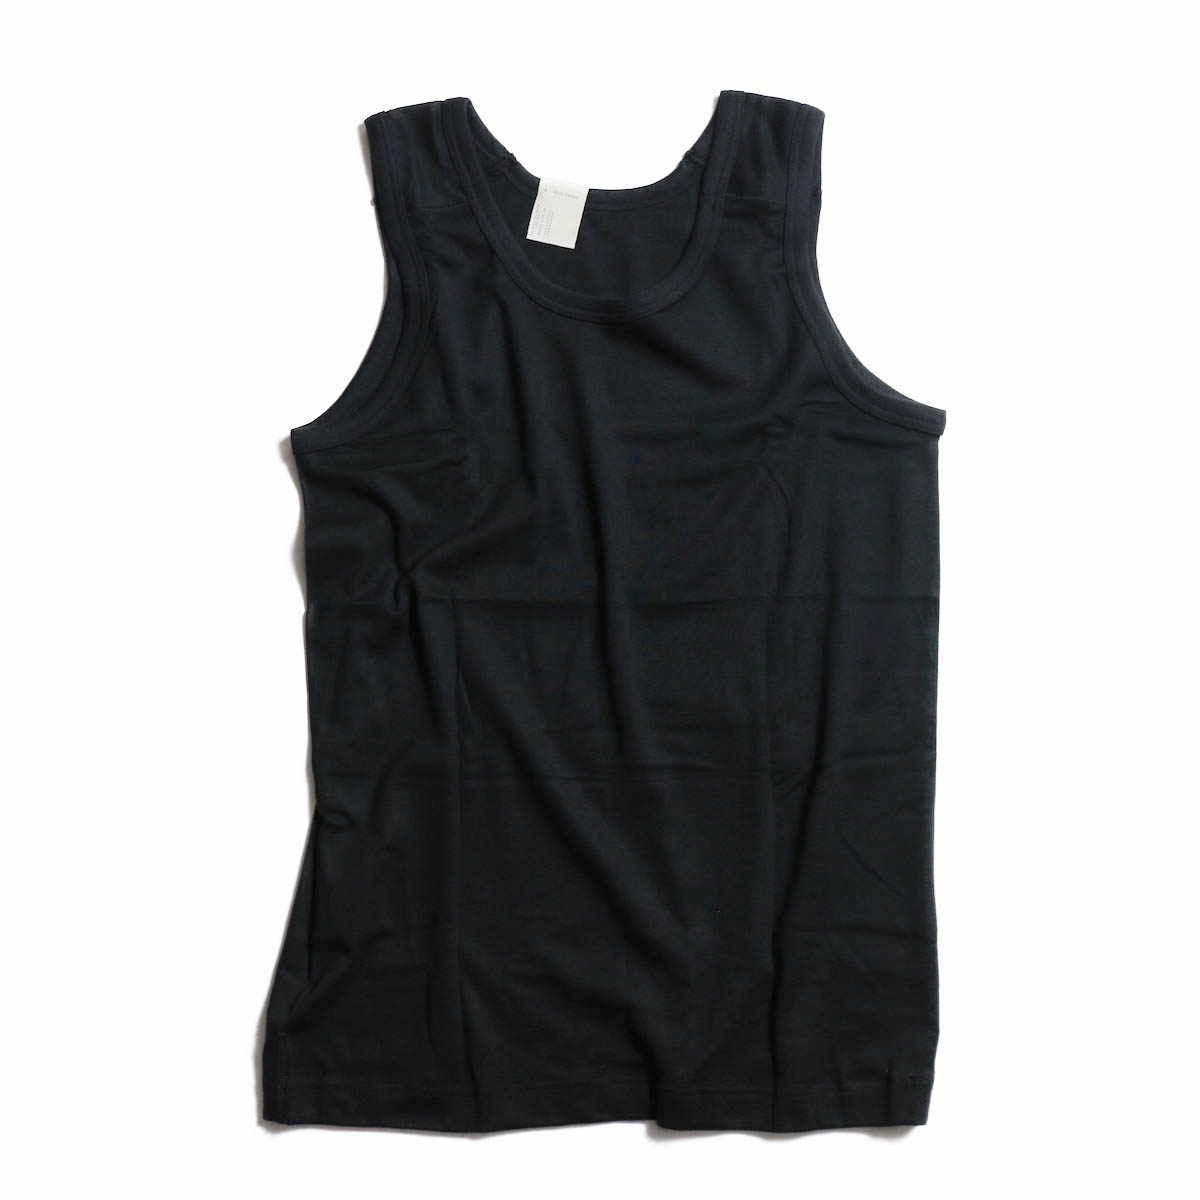 N.HOOLYWOOD T.P.E.S. BARRACKS KIT / 17-6120 TANK TOP -BLACK